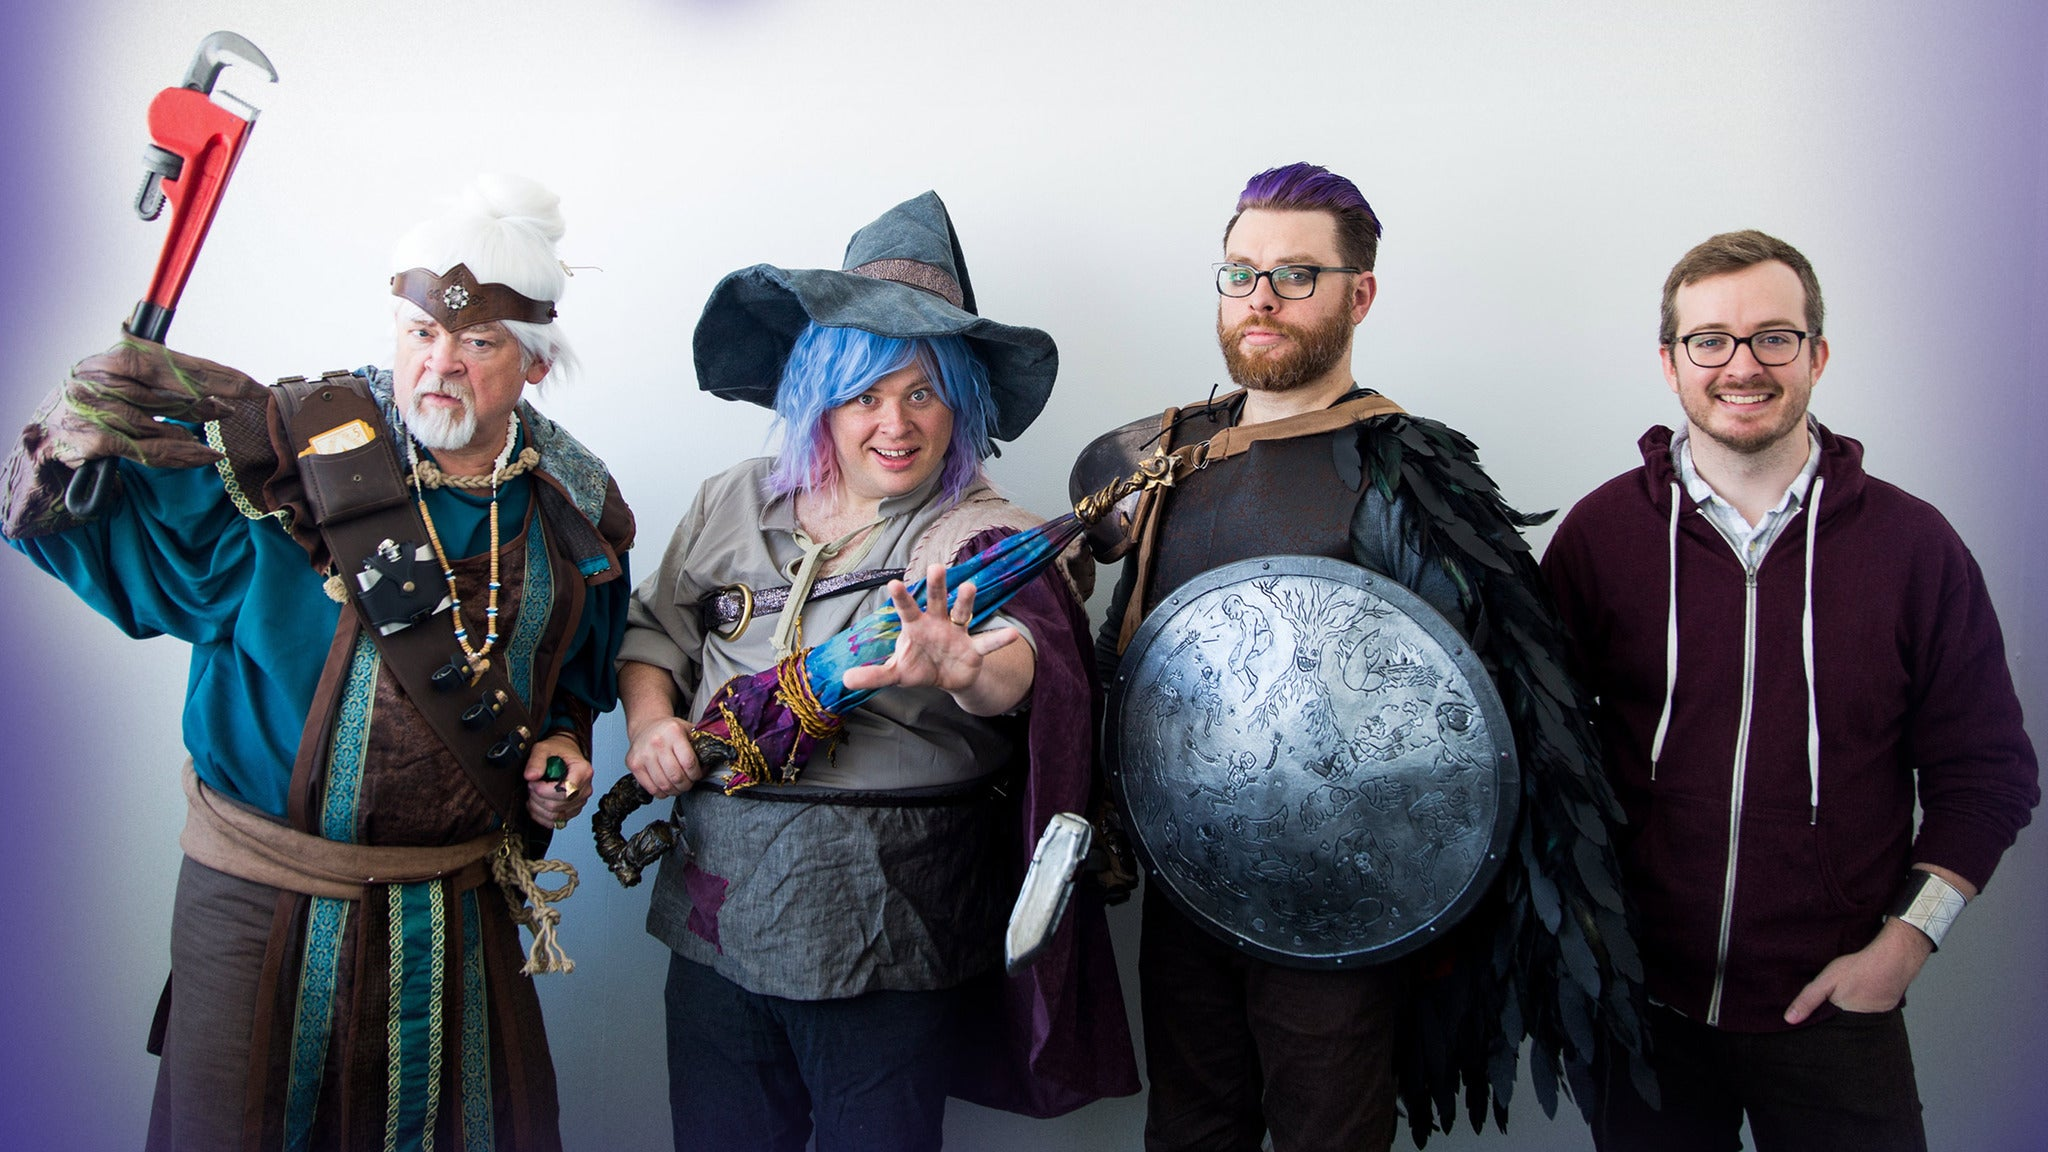 The brothers and their father, Clint dressed up as their characters from the Balance Arc of The Adventure Zone.